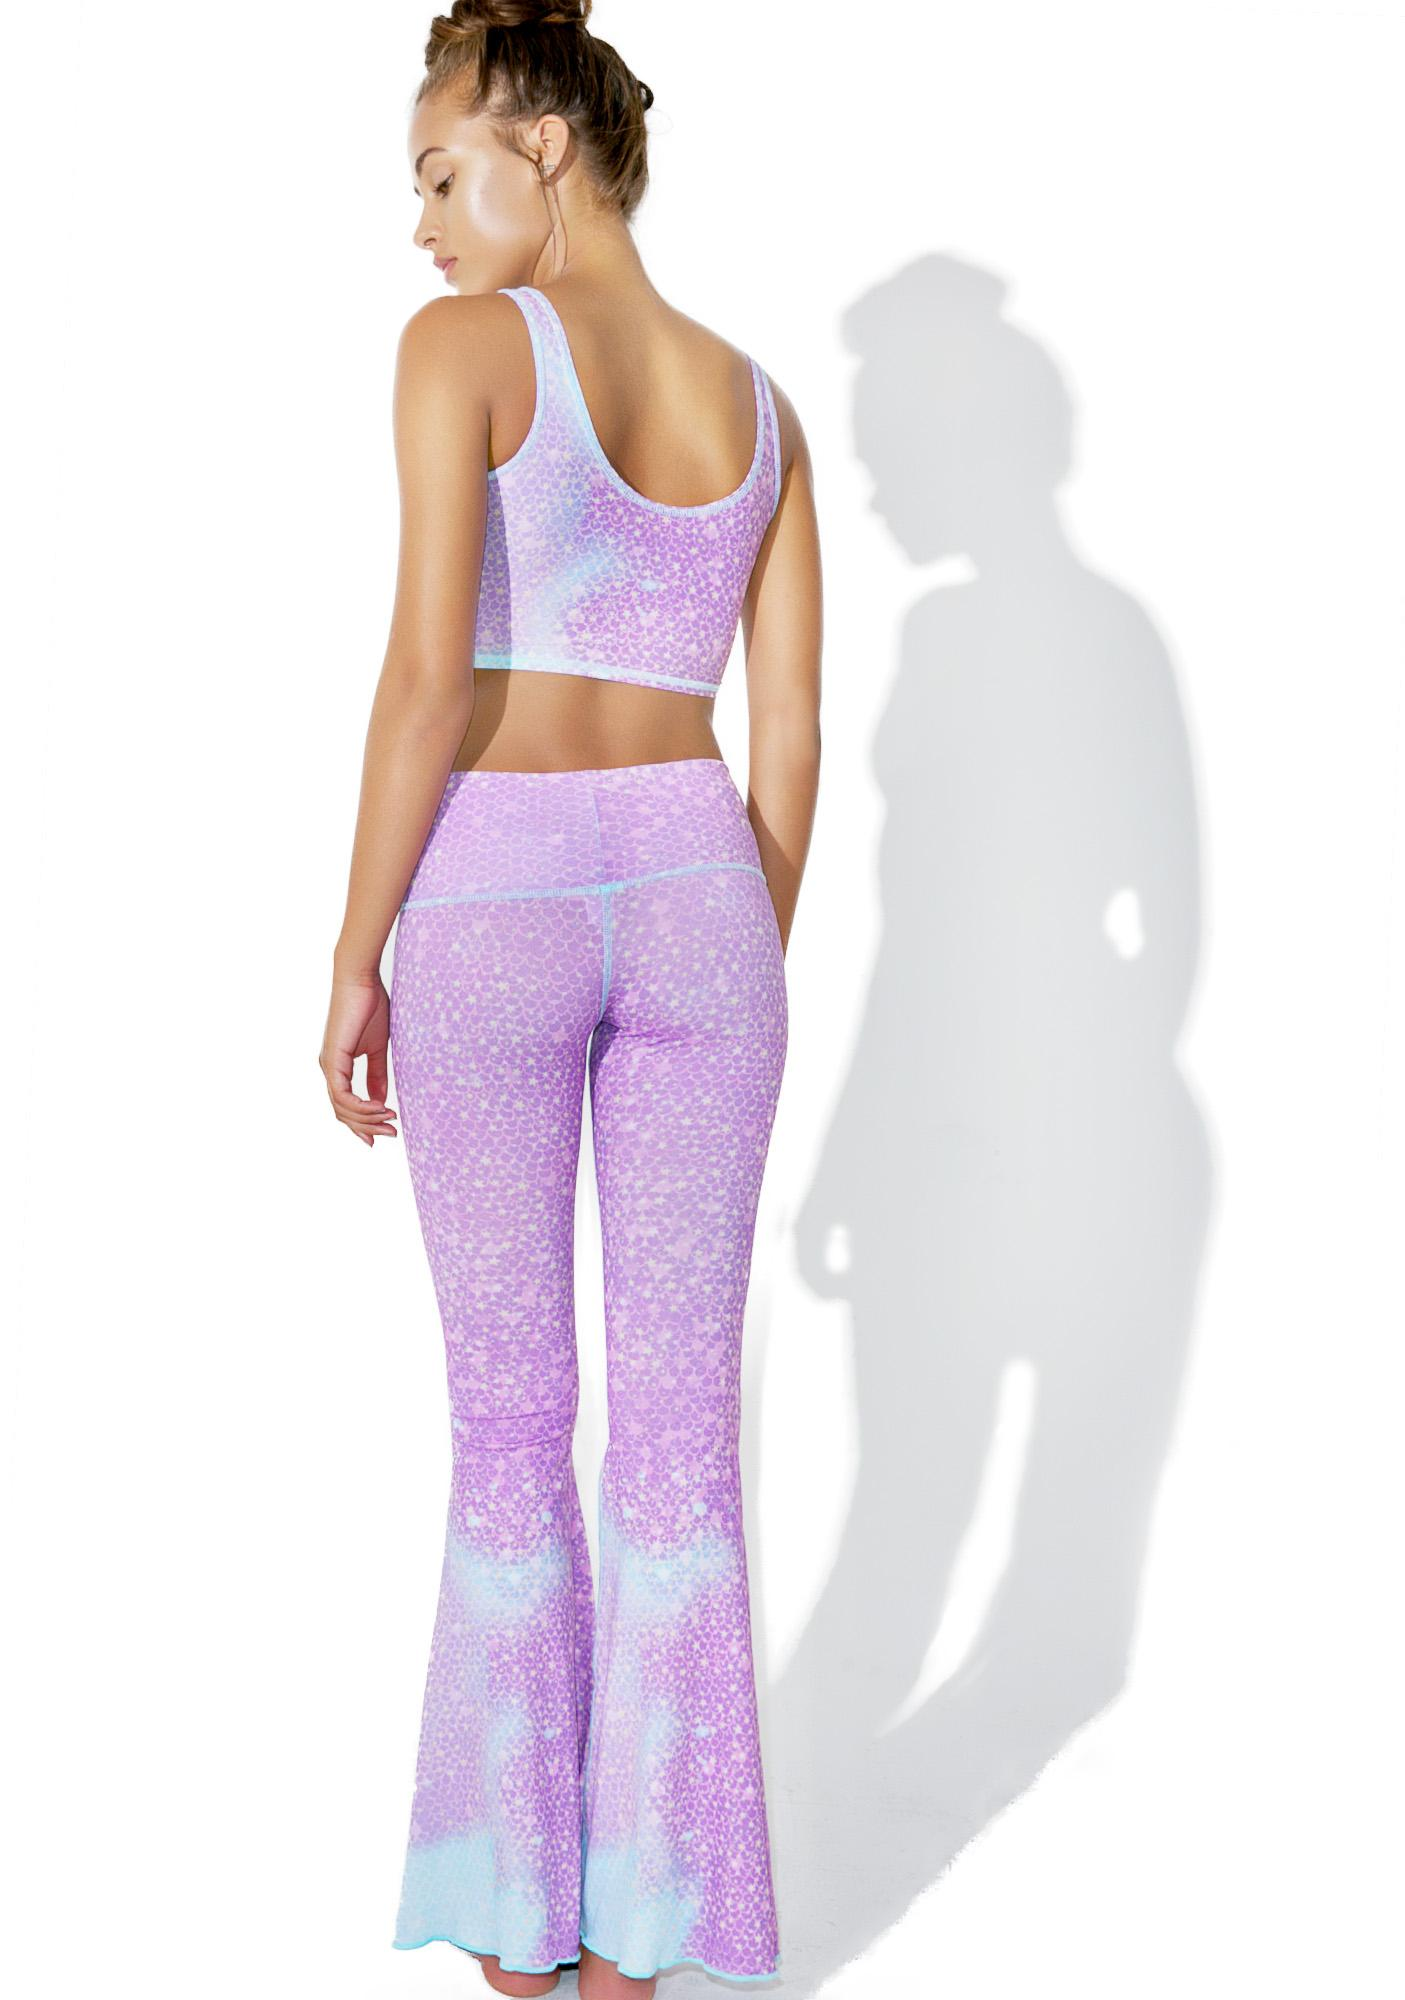 TEEKI Mermaid Fairyqueen Bell Bottoms